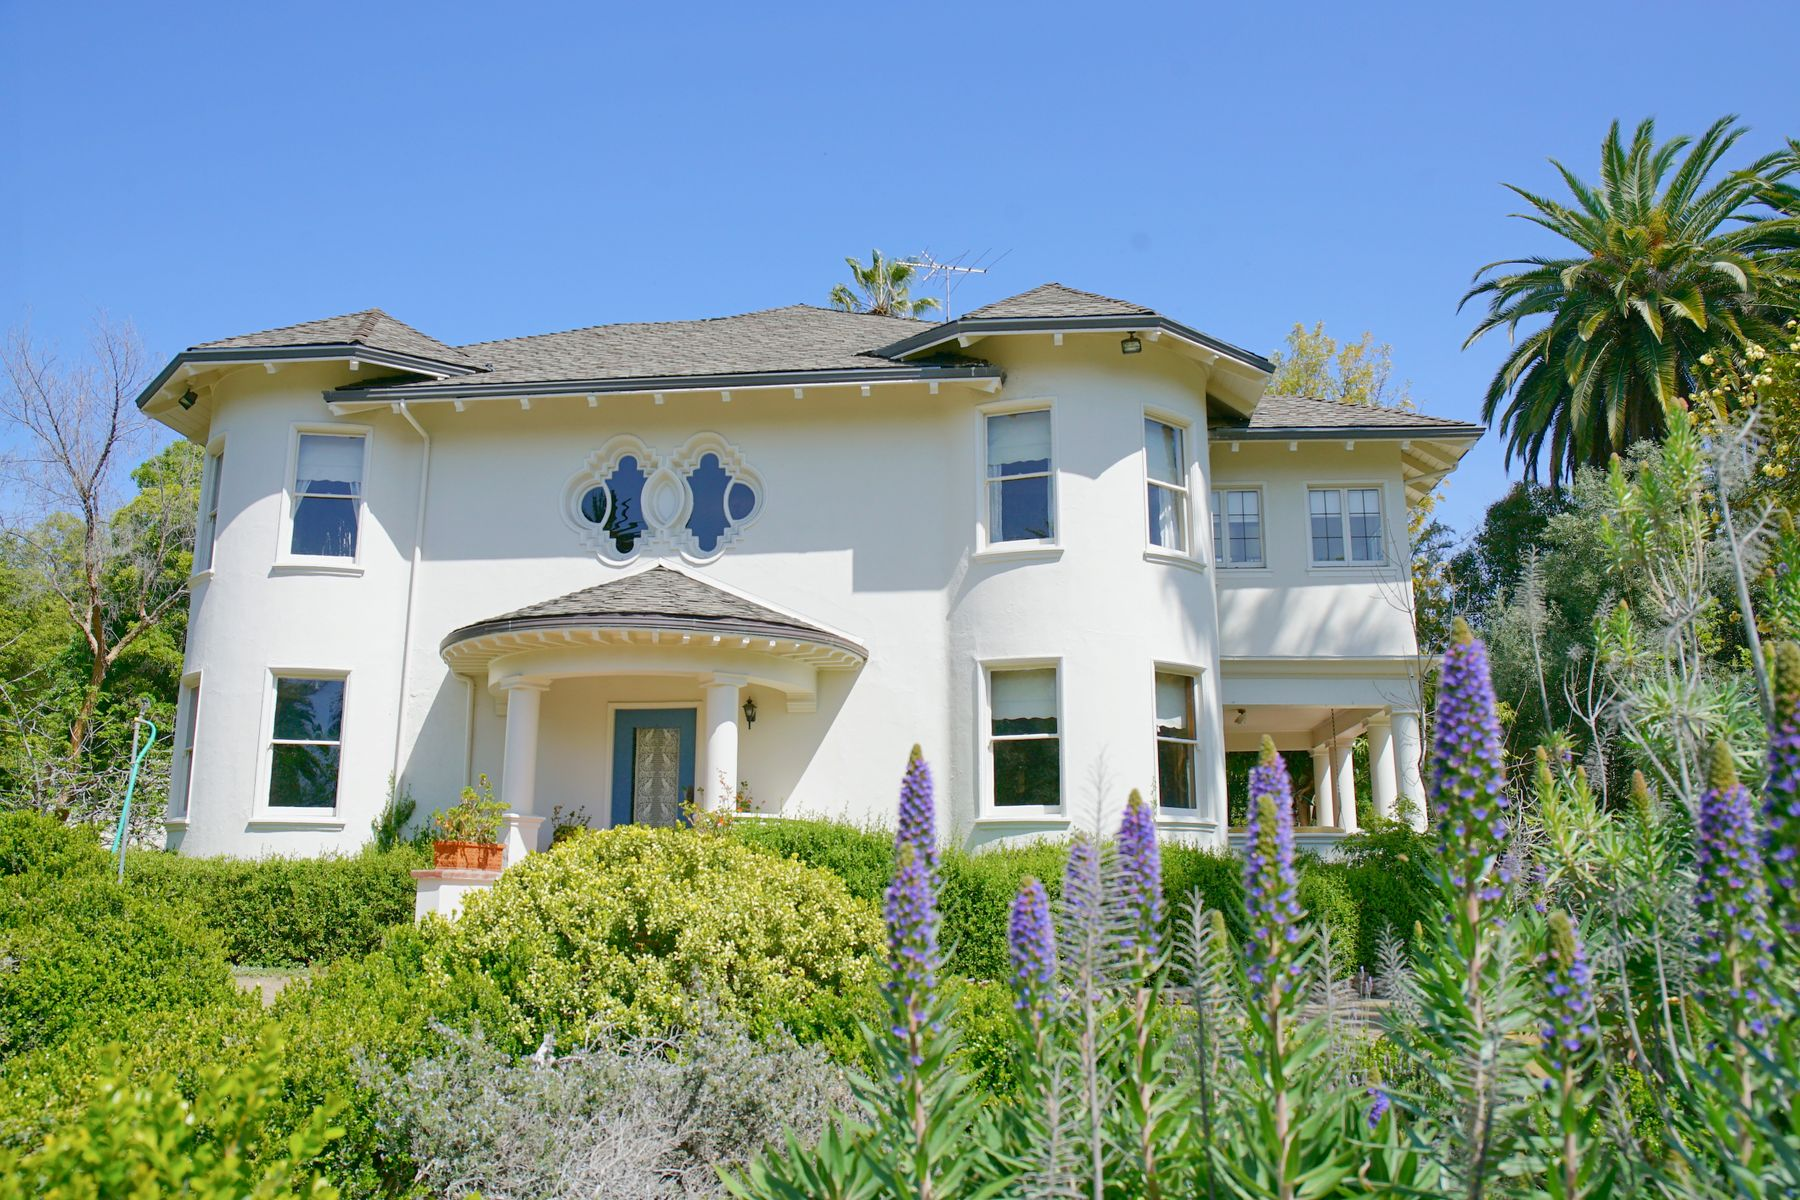 Other Residential Homes 为 销售 在 Curtner-Weller Ranch 859 London Drive Milpitas, 加利福尼亚州 95035 美国